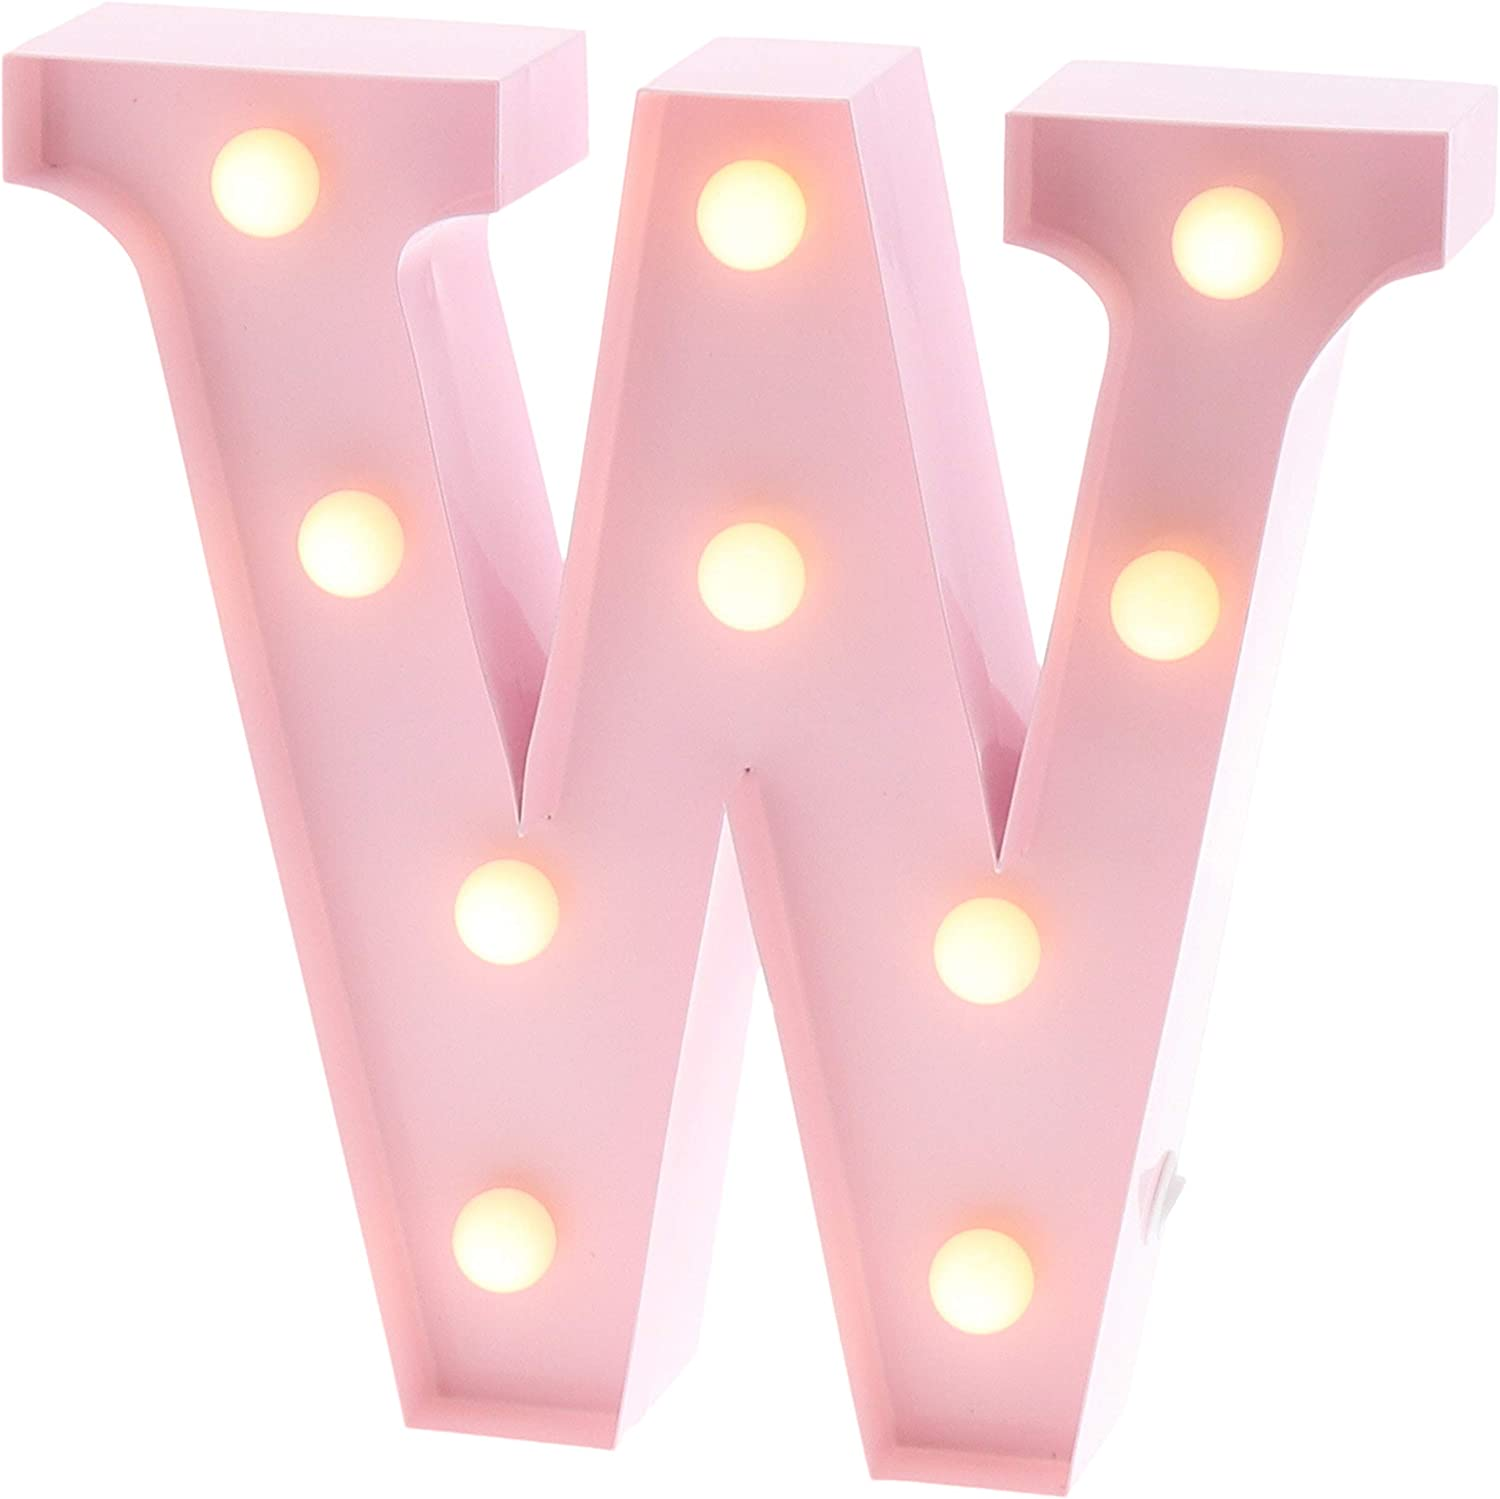 "Barnyard Designs Metal Marquee Letter W Light Up Wall Initial Nursery Letter, Home and Event Decoration 9"" (Baby Pink)"